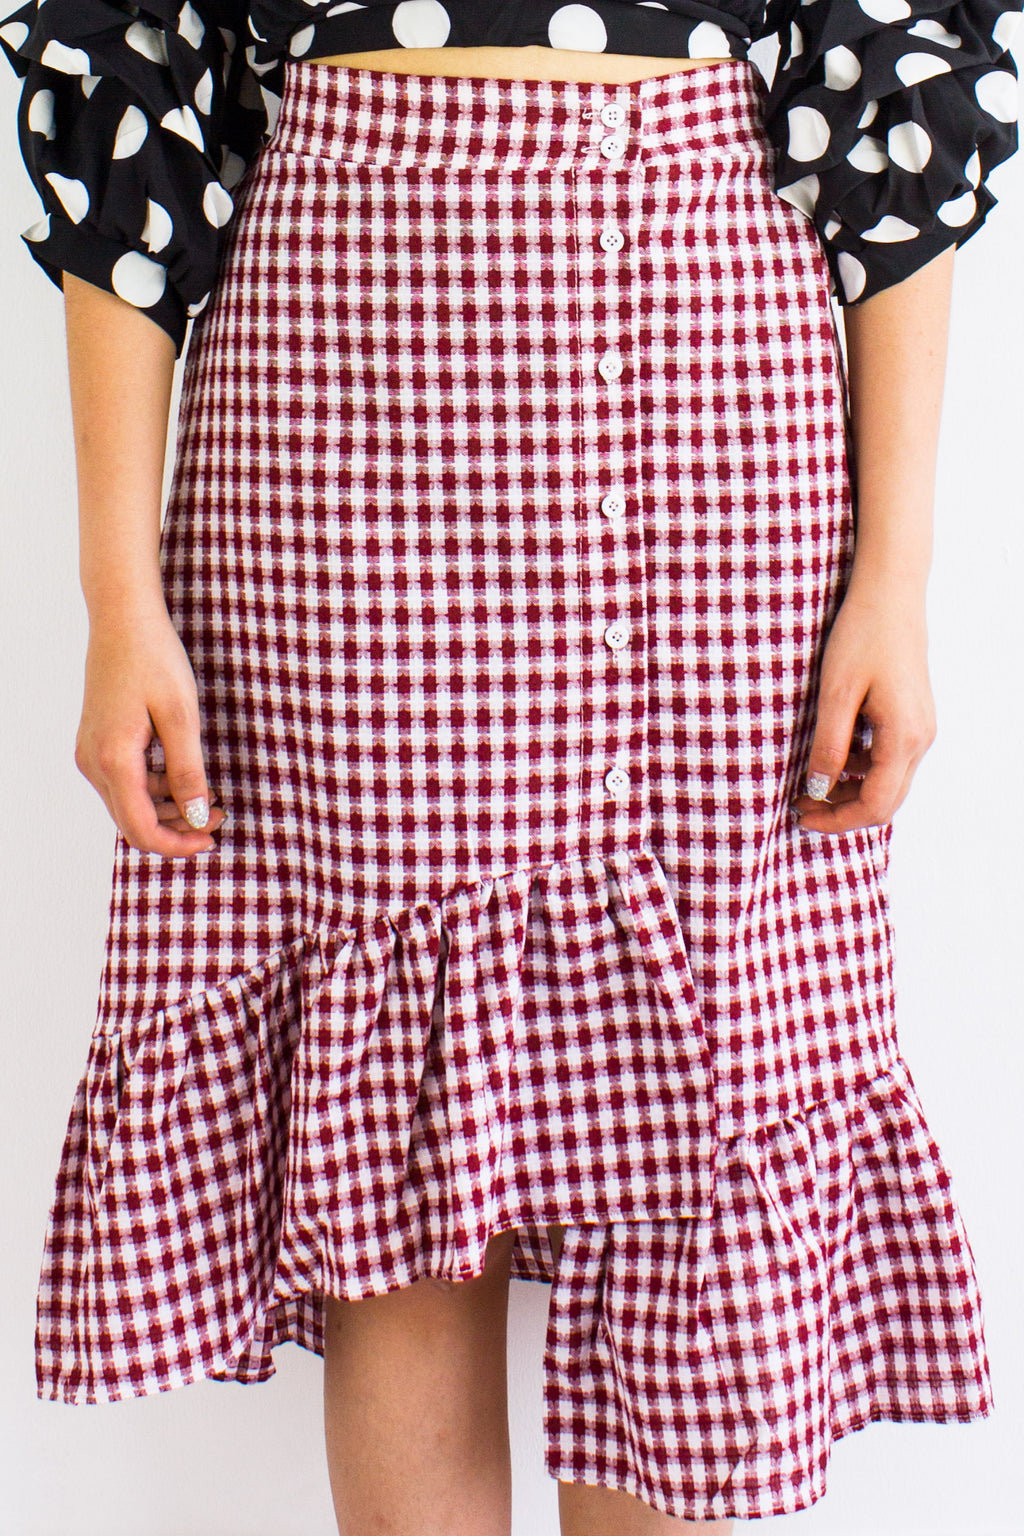 Gingham Go Ruffle Skirt in Wine Red - BOTTOMS - Peep Boutique